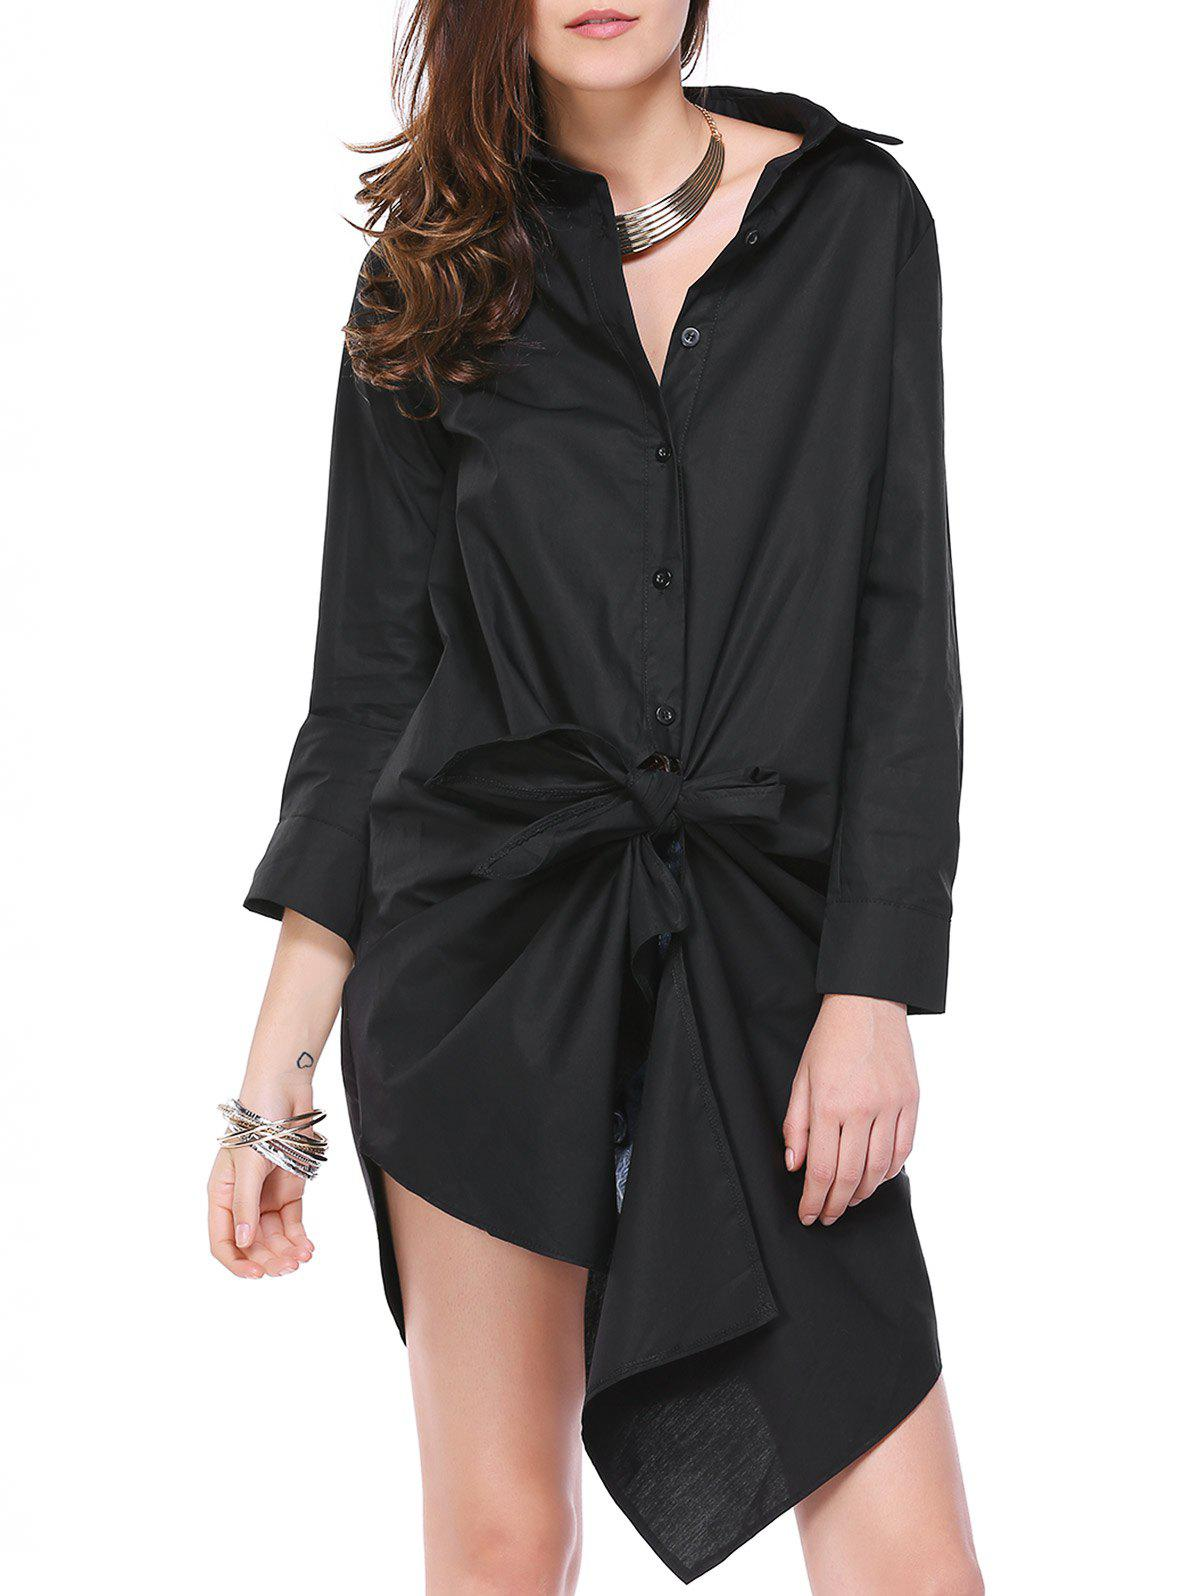 Refreshing Women's Irregular Solid Color Loose Shirt - BLACK M